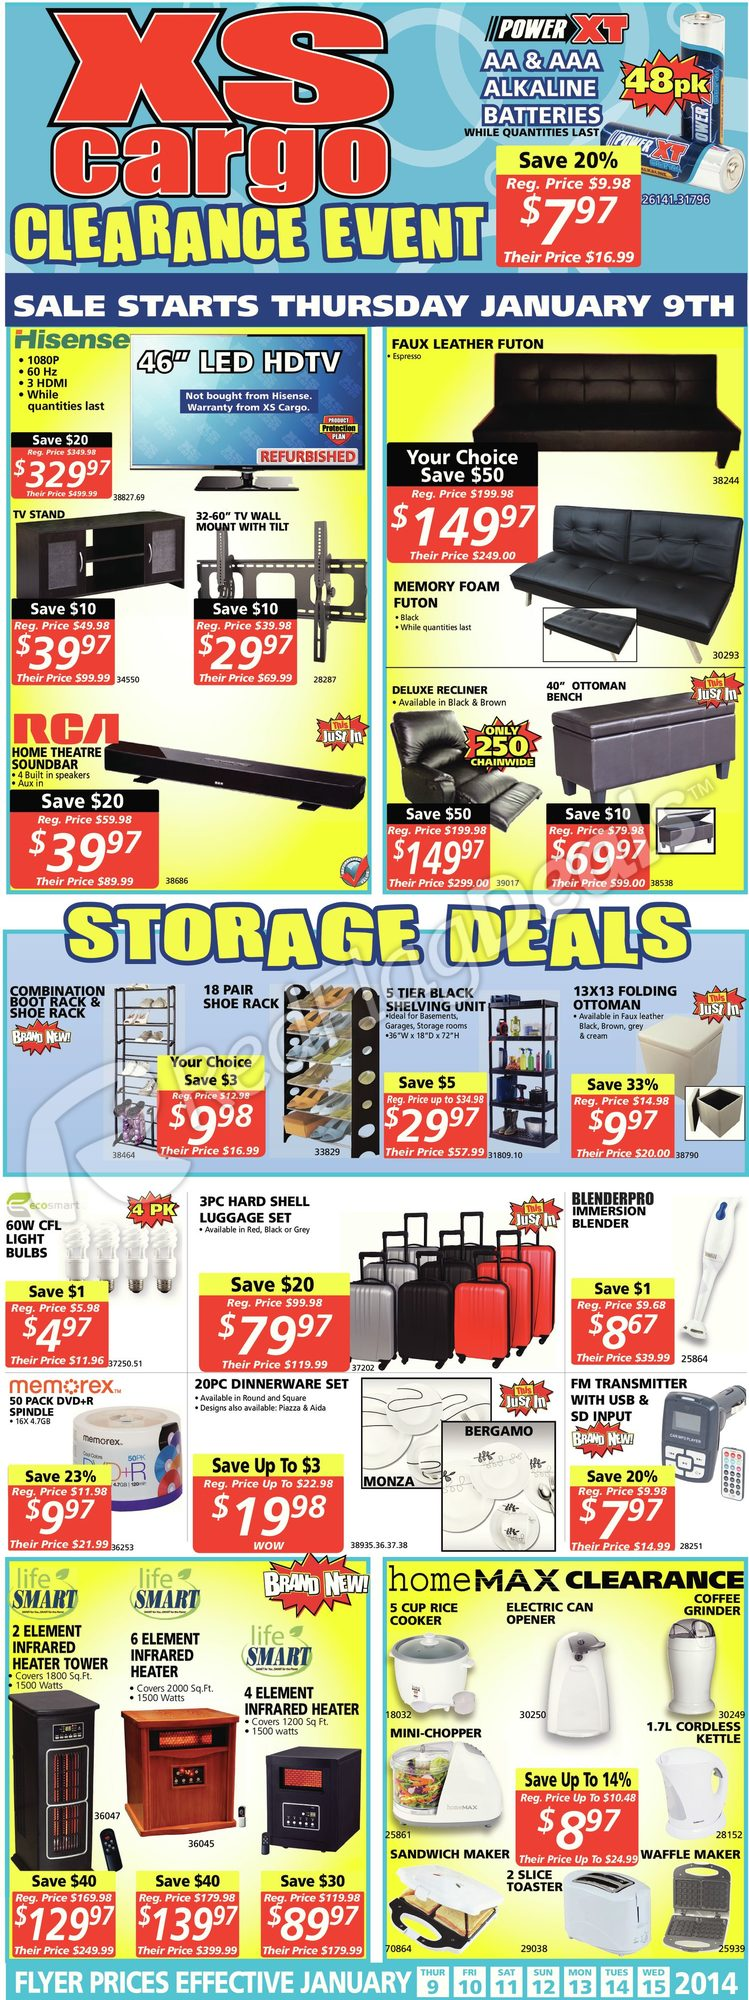 Online XS Cargo Flyer, Opening Hours, Website & Nearby Store Location Locator Start now saving on your money with this latest week xs cargo flyer, sales, promotions, offers, coupons, deals and specials.